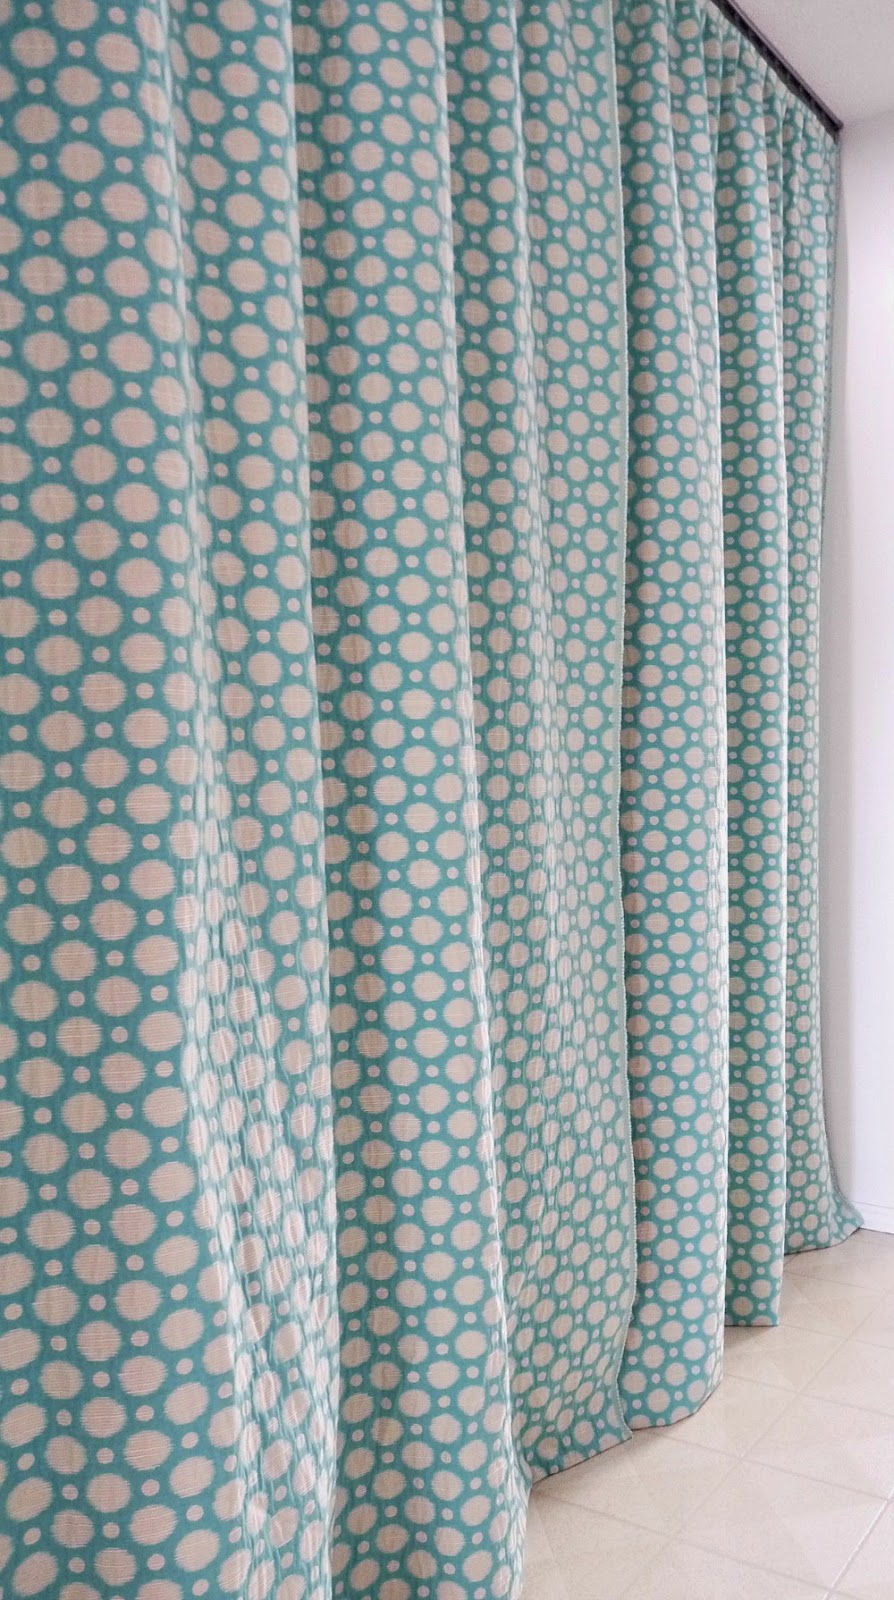 Hide A Washer And Dryer With Easy Diy Gathered Curtains On A Track Budget Laundry Room Dans Le Lakehouse